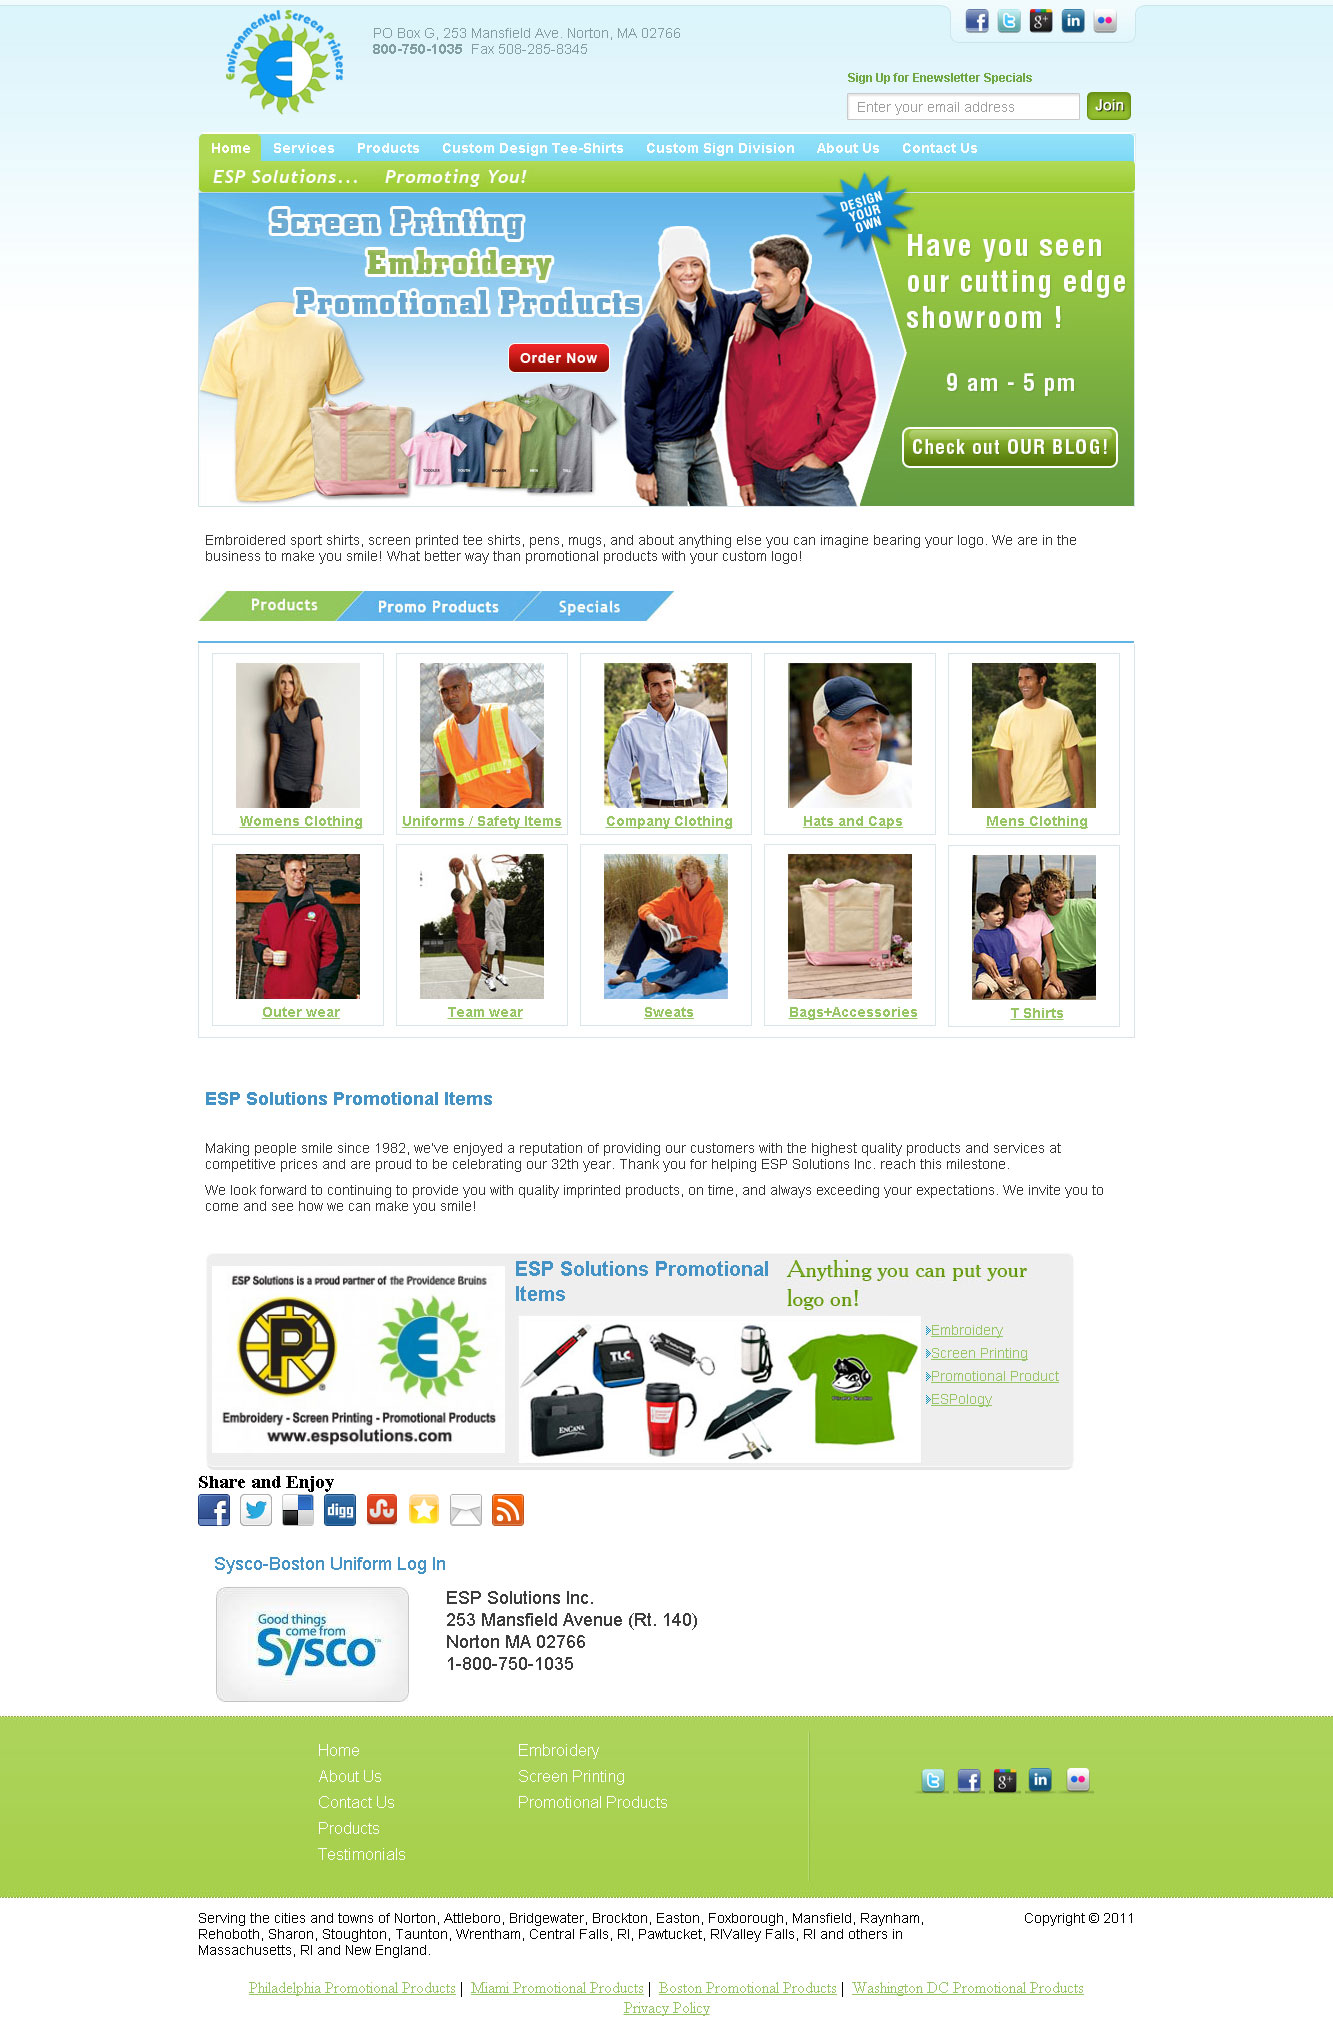 Website for ordering promotional products